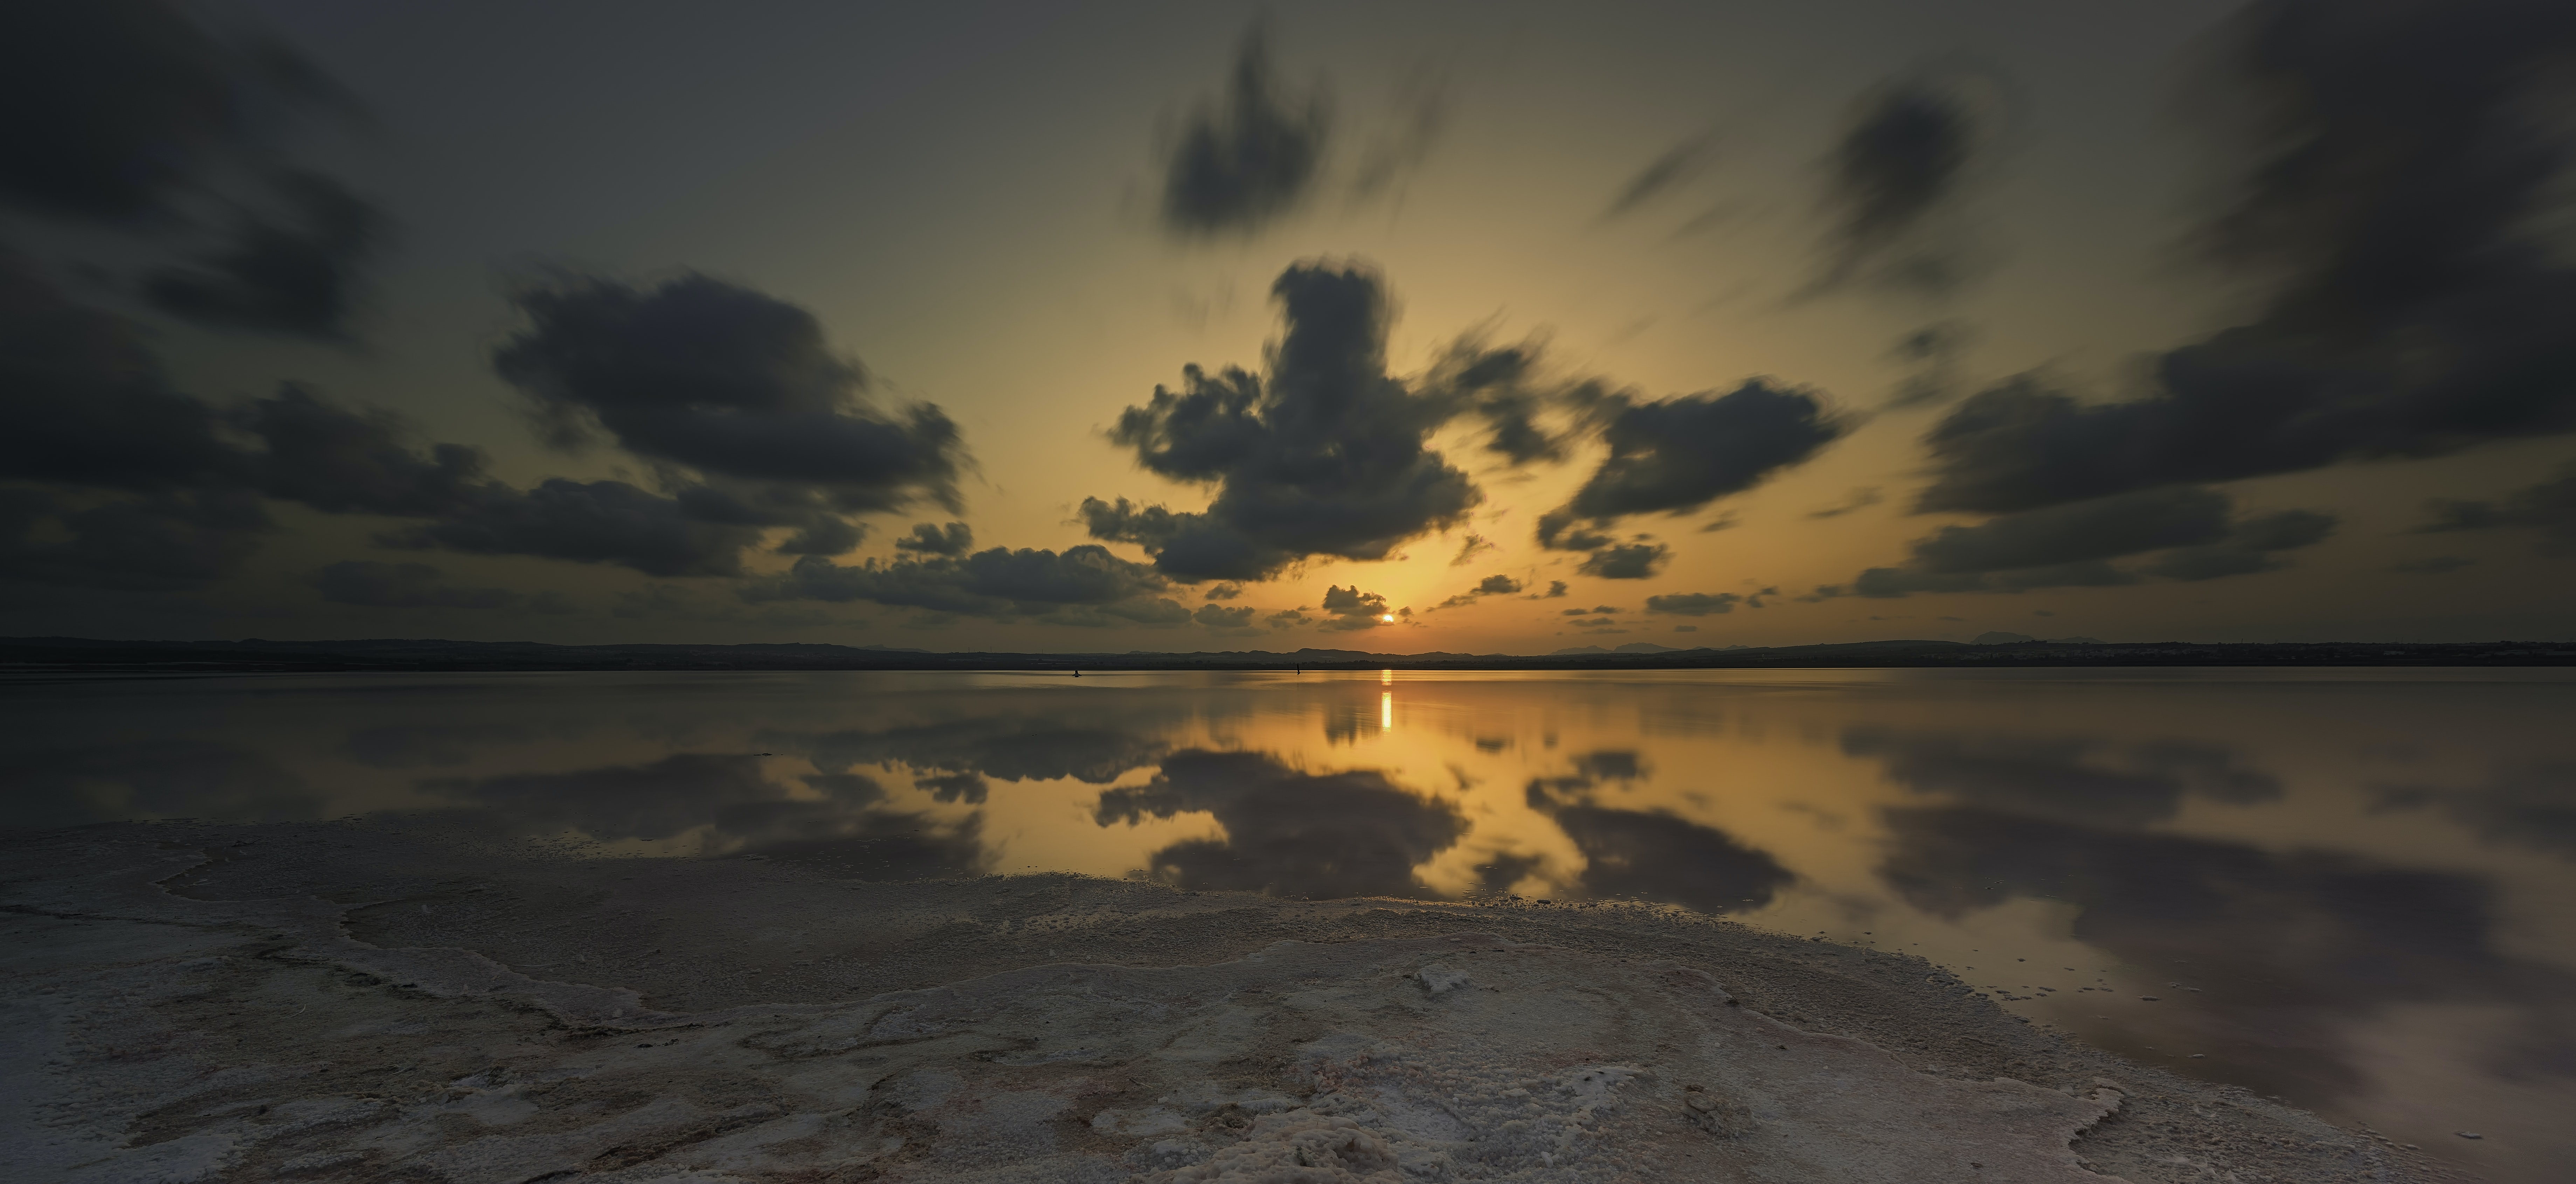 View of clouds drifting away from the sandy shoreline towards the sunset in Torrevieja, Spain